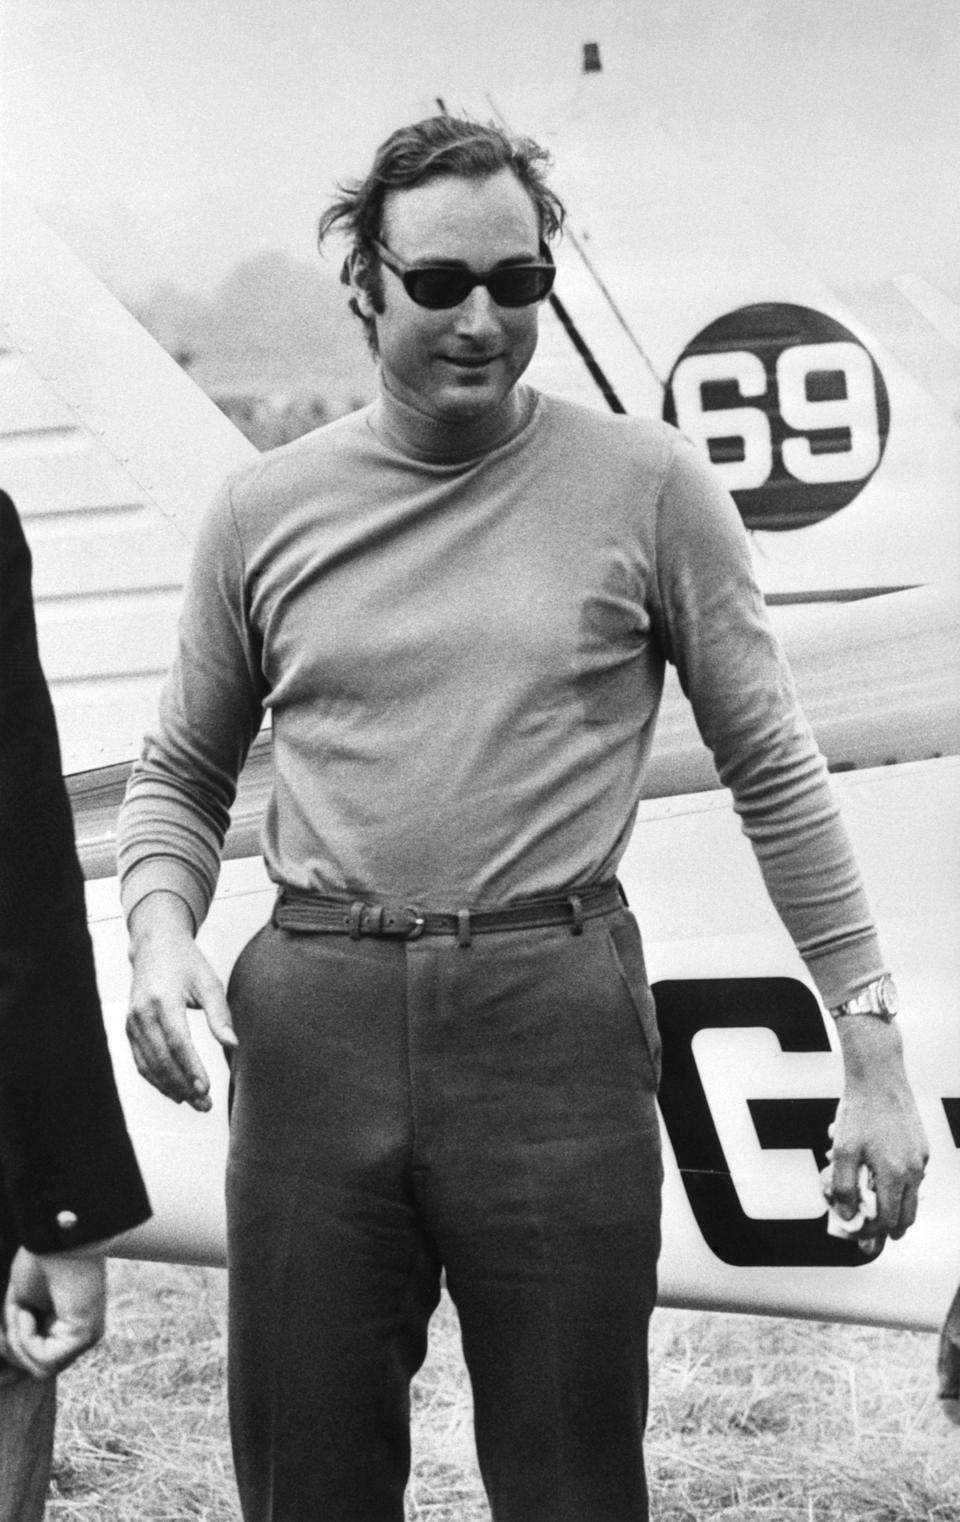 Prince William of Gloucester shortly before competing in the Goodyear Air Race which was to lead to his death after crashing in the event.   (Photo by PA Images via Getty Images)